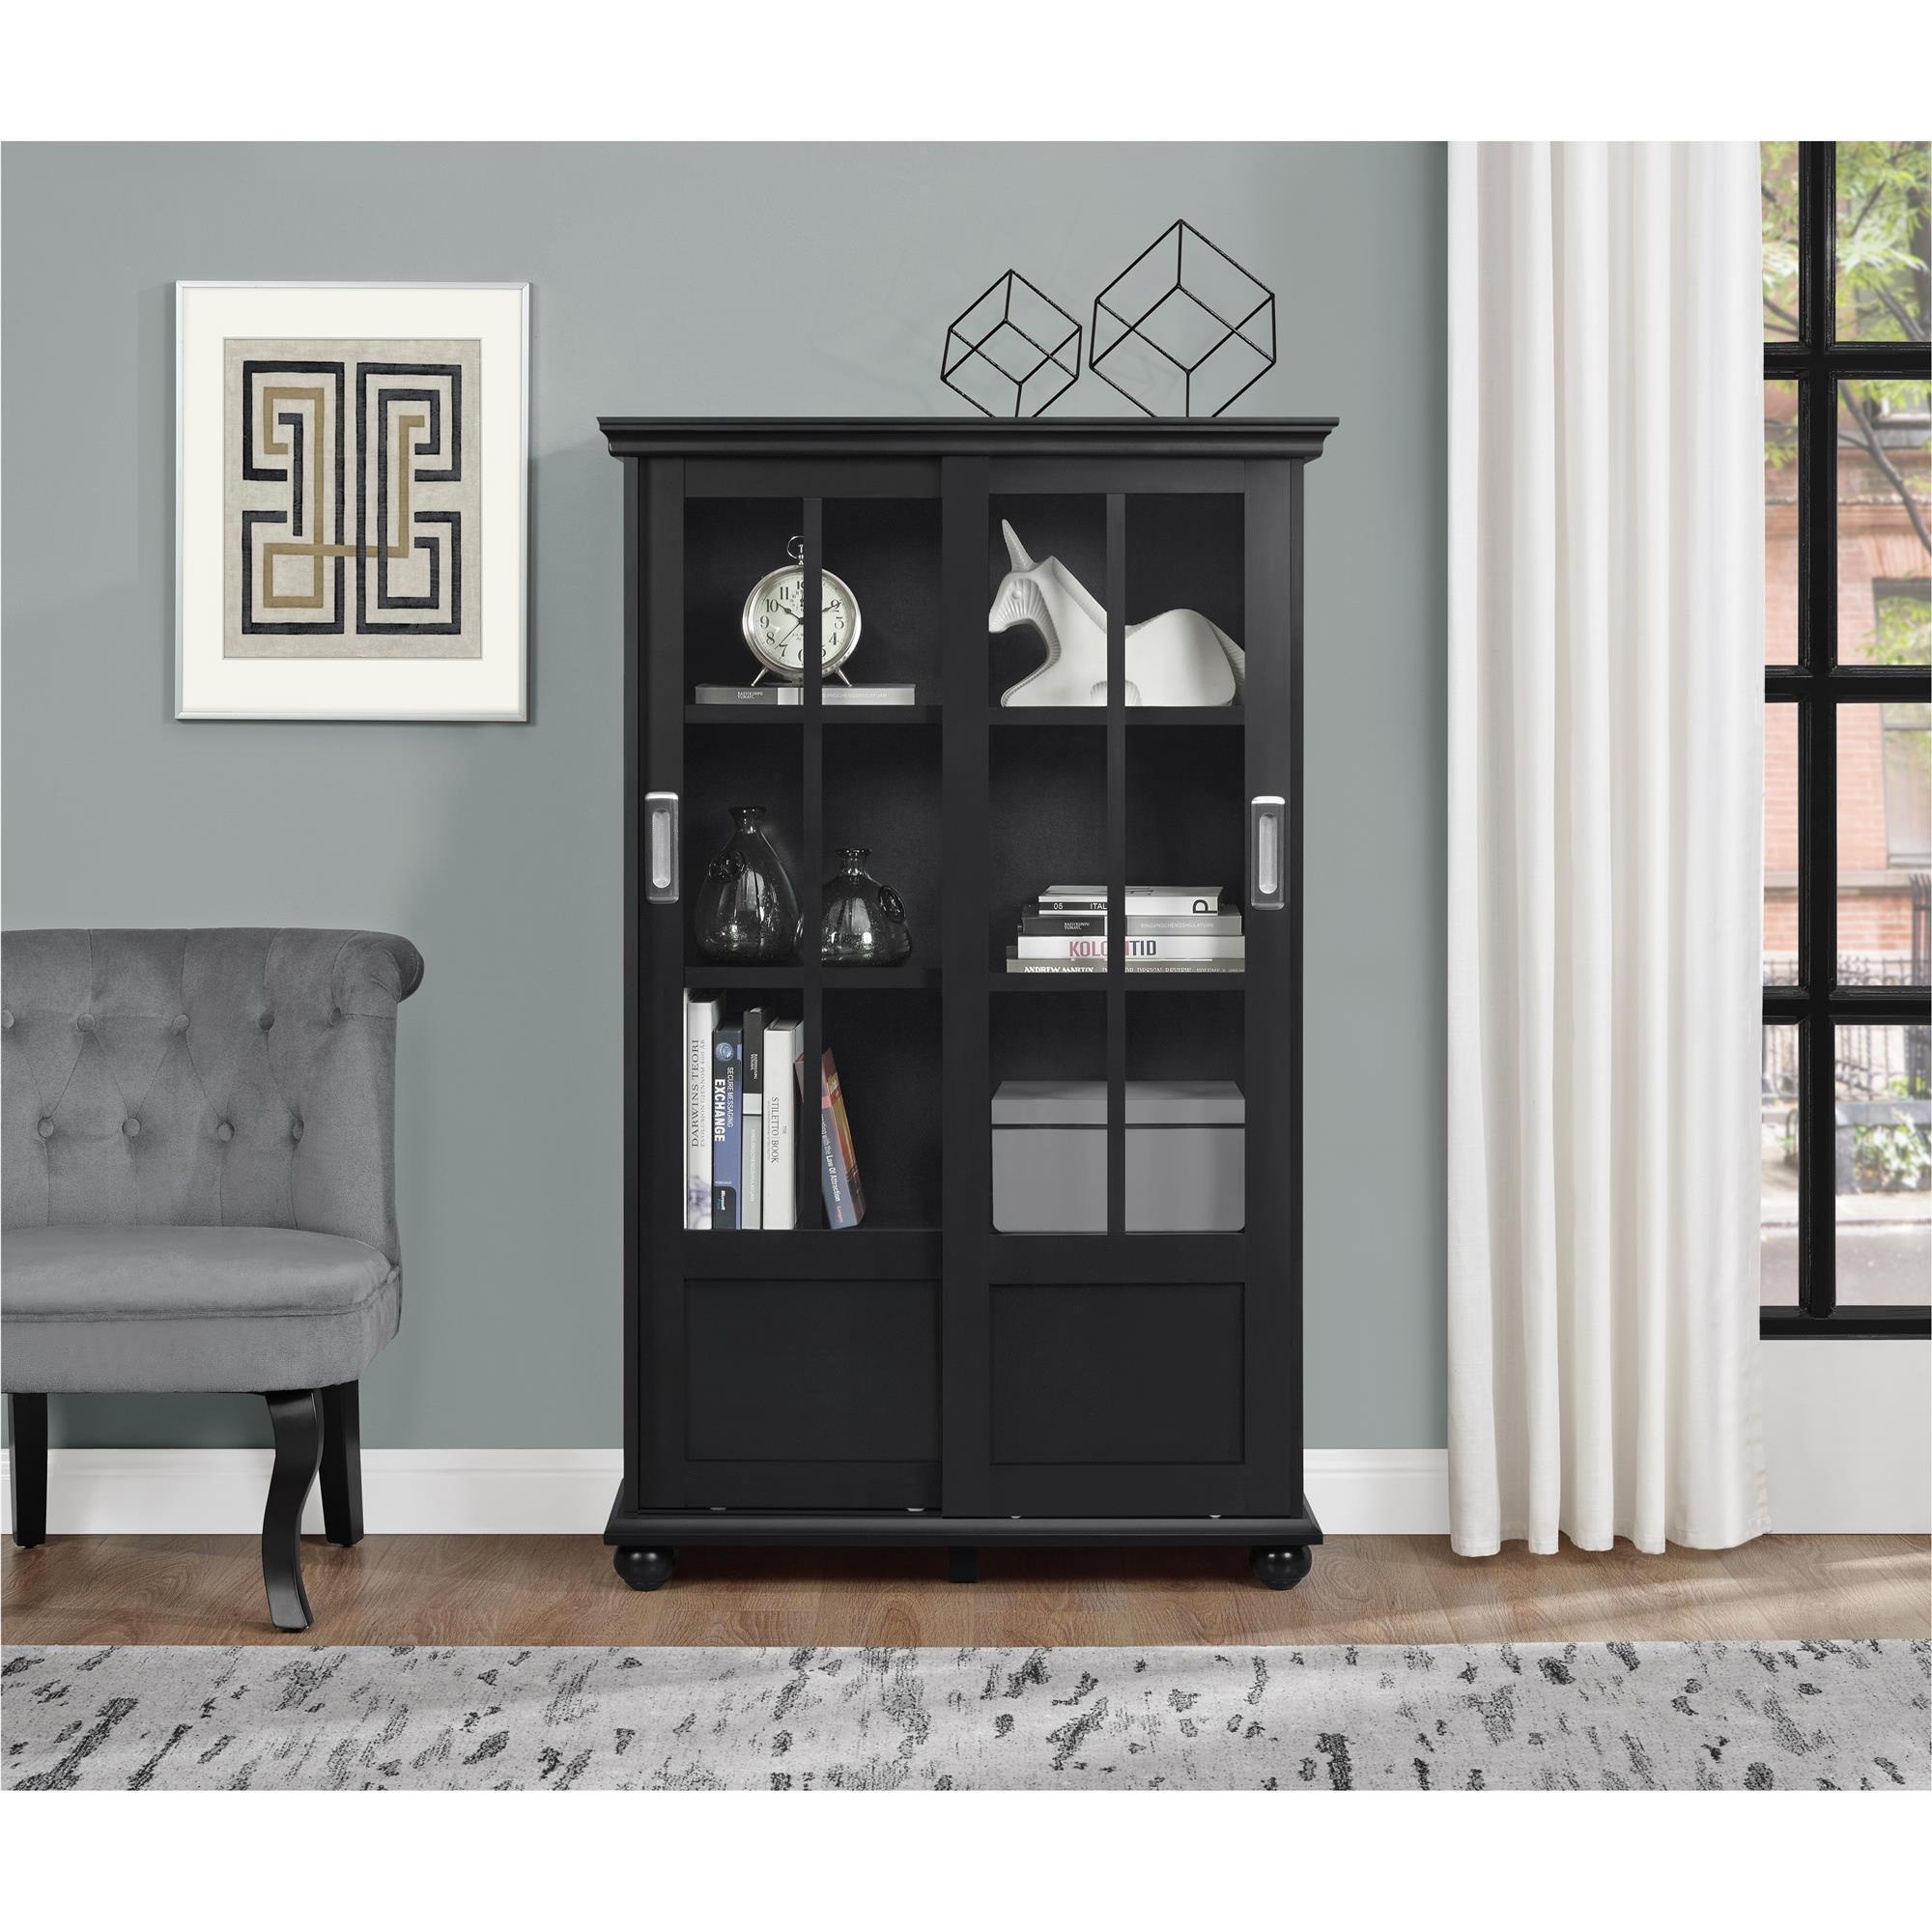 garden glass ameriwood lane doors overstock sliding with today home bookcases free aaron navy bookcase shipping product